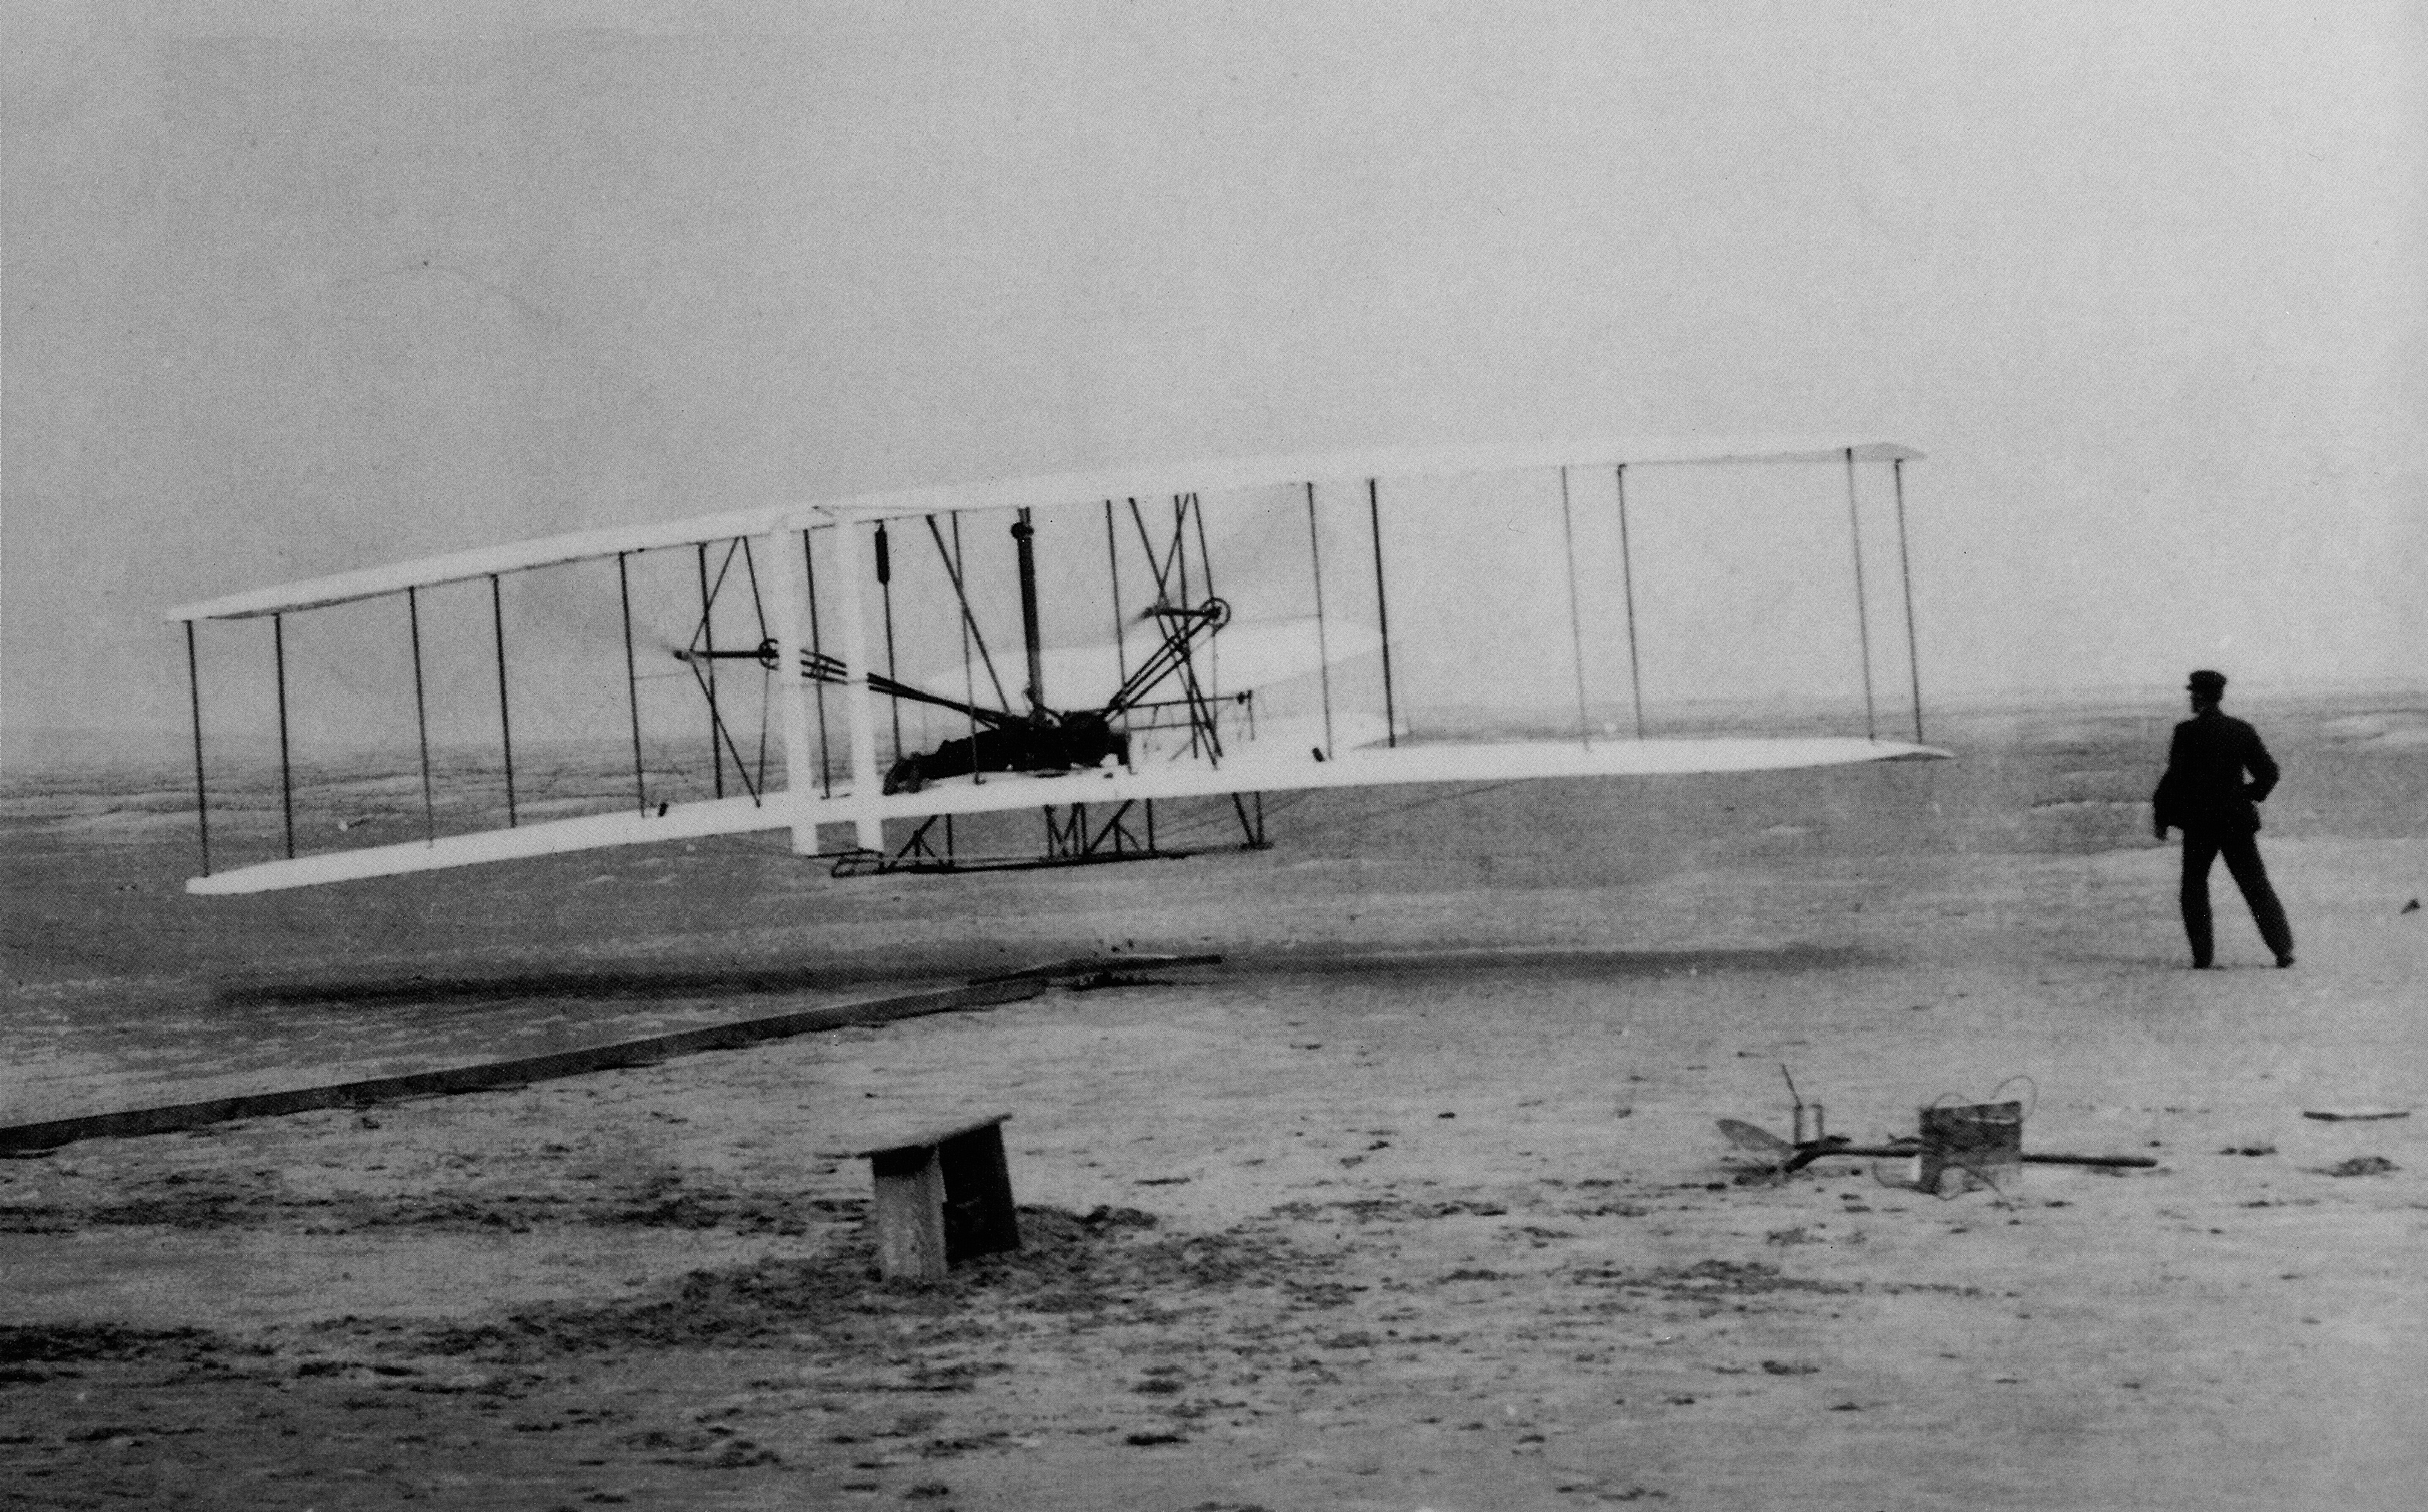 First Flight Kitty Hawk 1903 with regard to large photos of the wright brothers first airplane flight